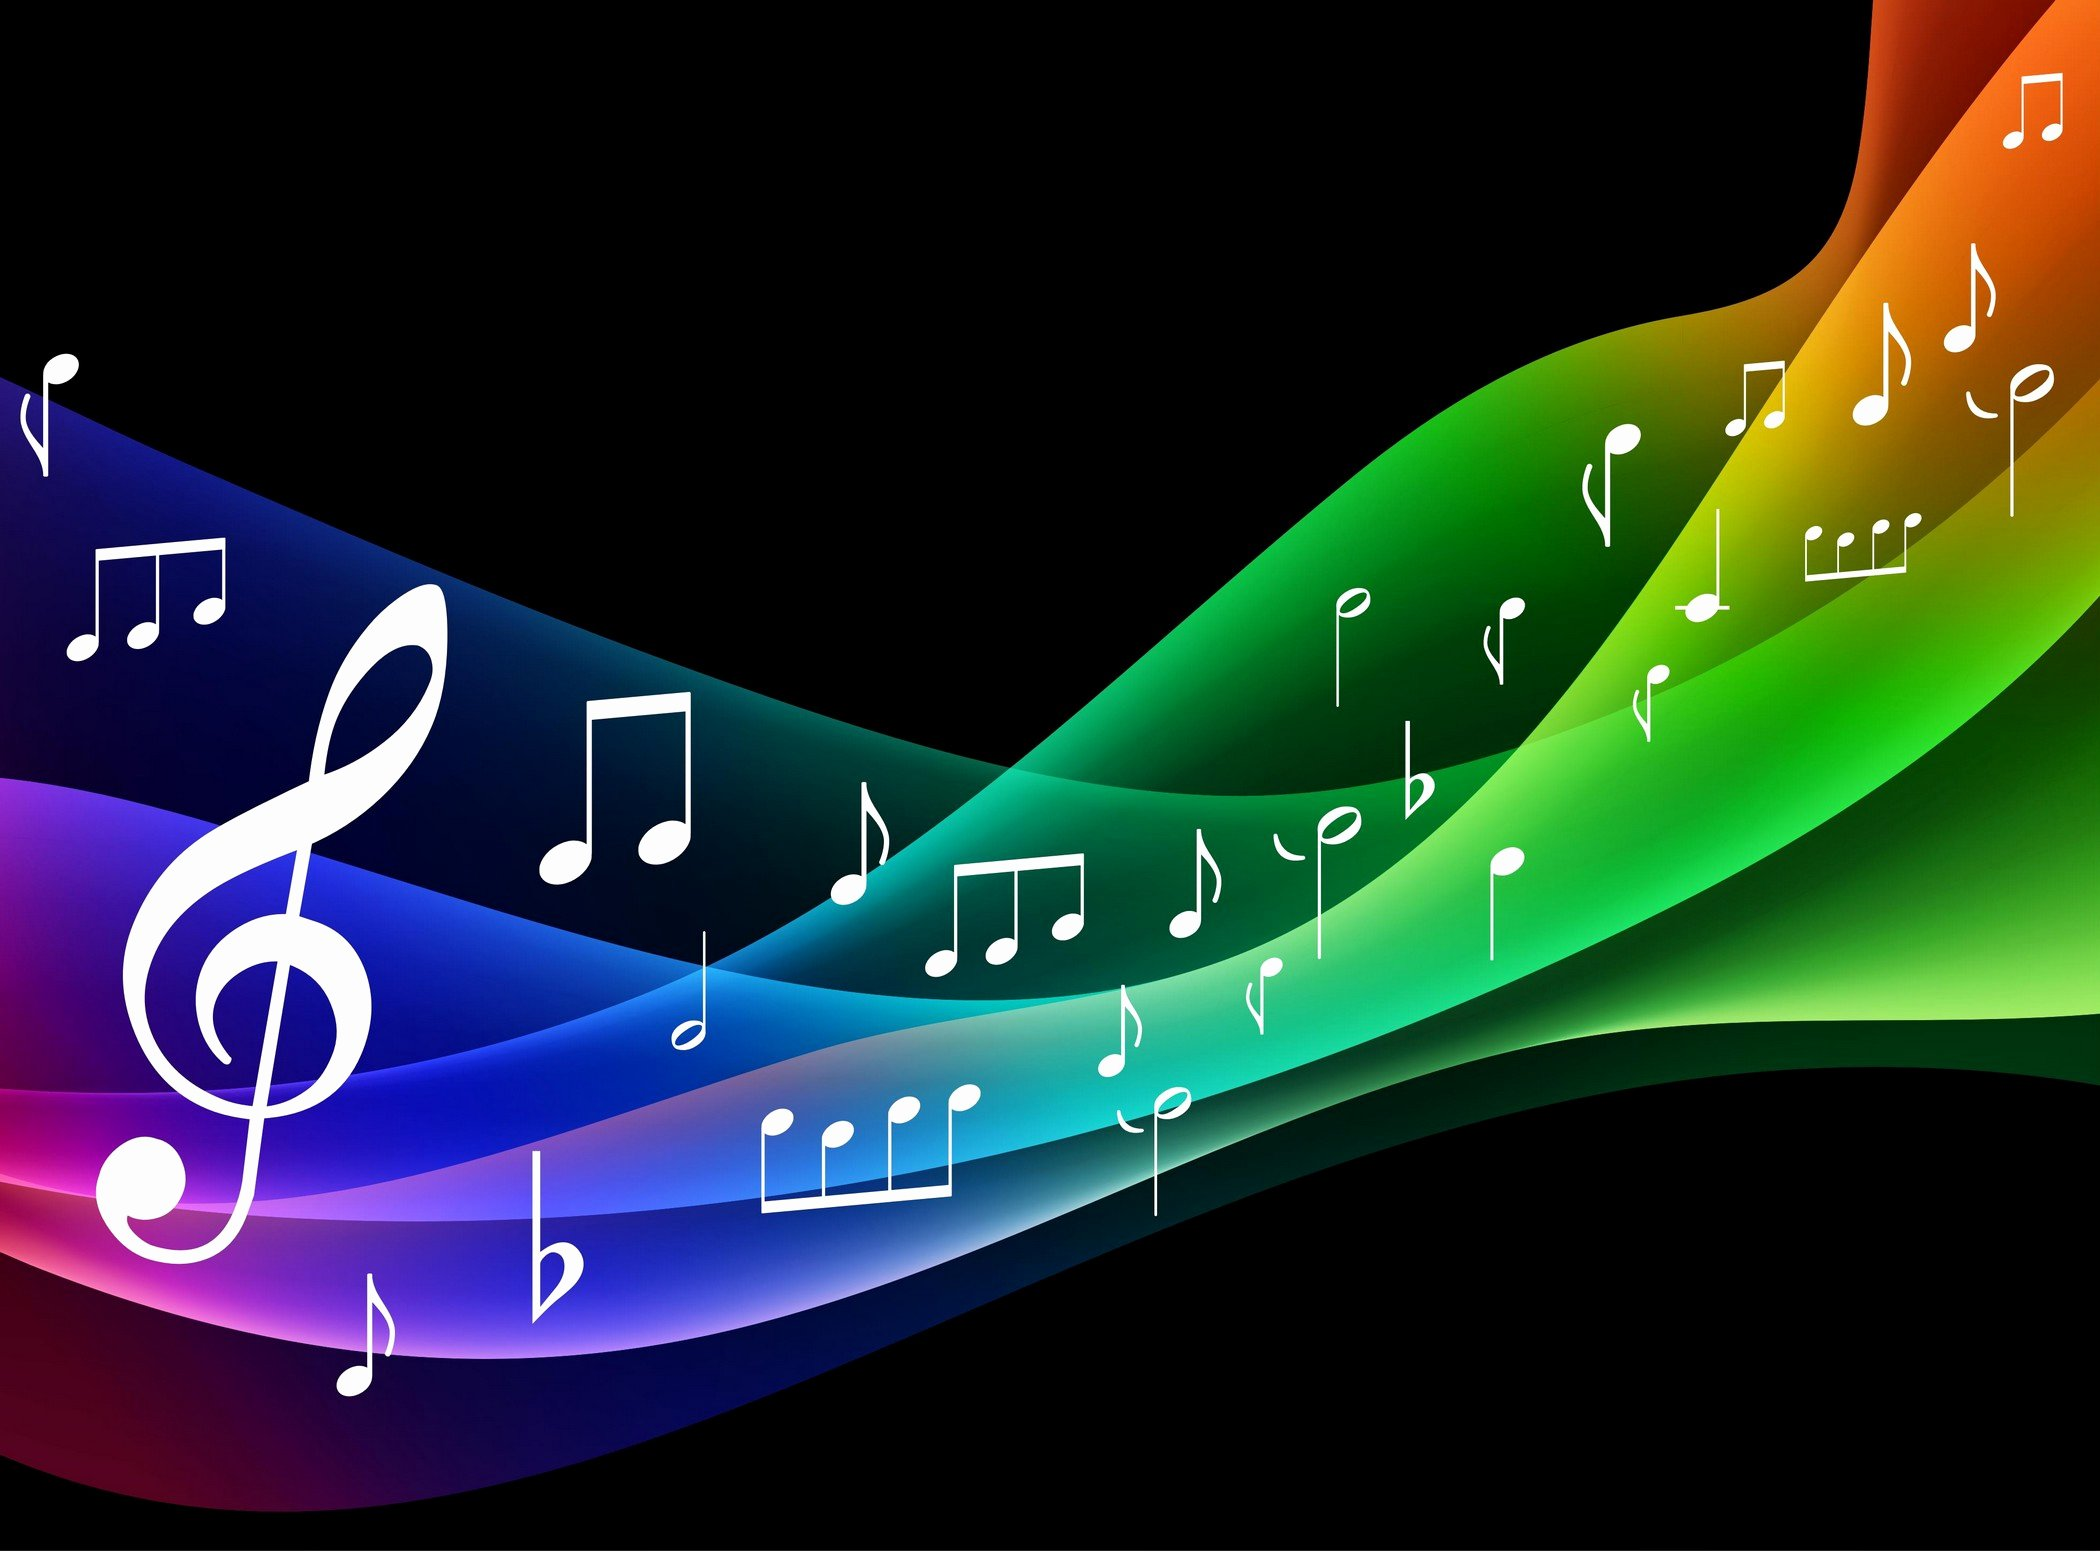 Free Music Background Images Fresh Free Music Background Download Free Clip Art Free Clip Art On Clipart Library